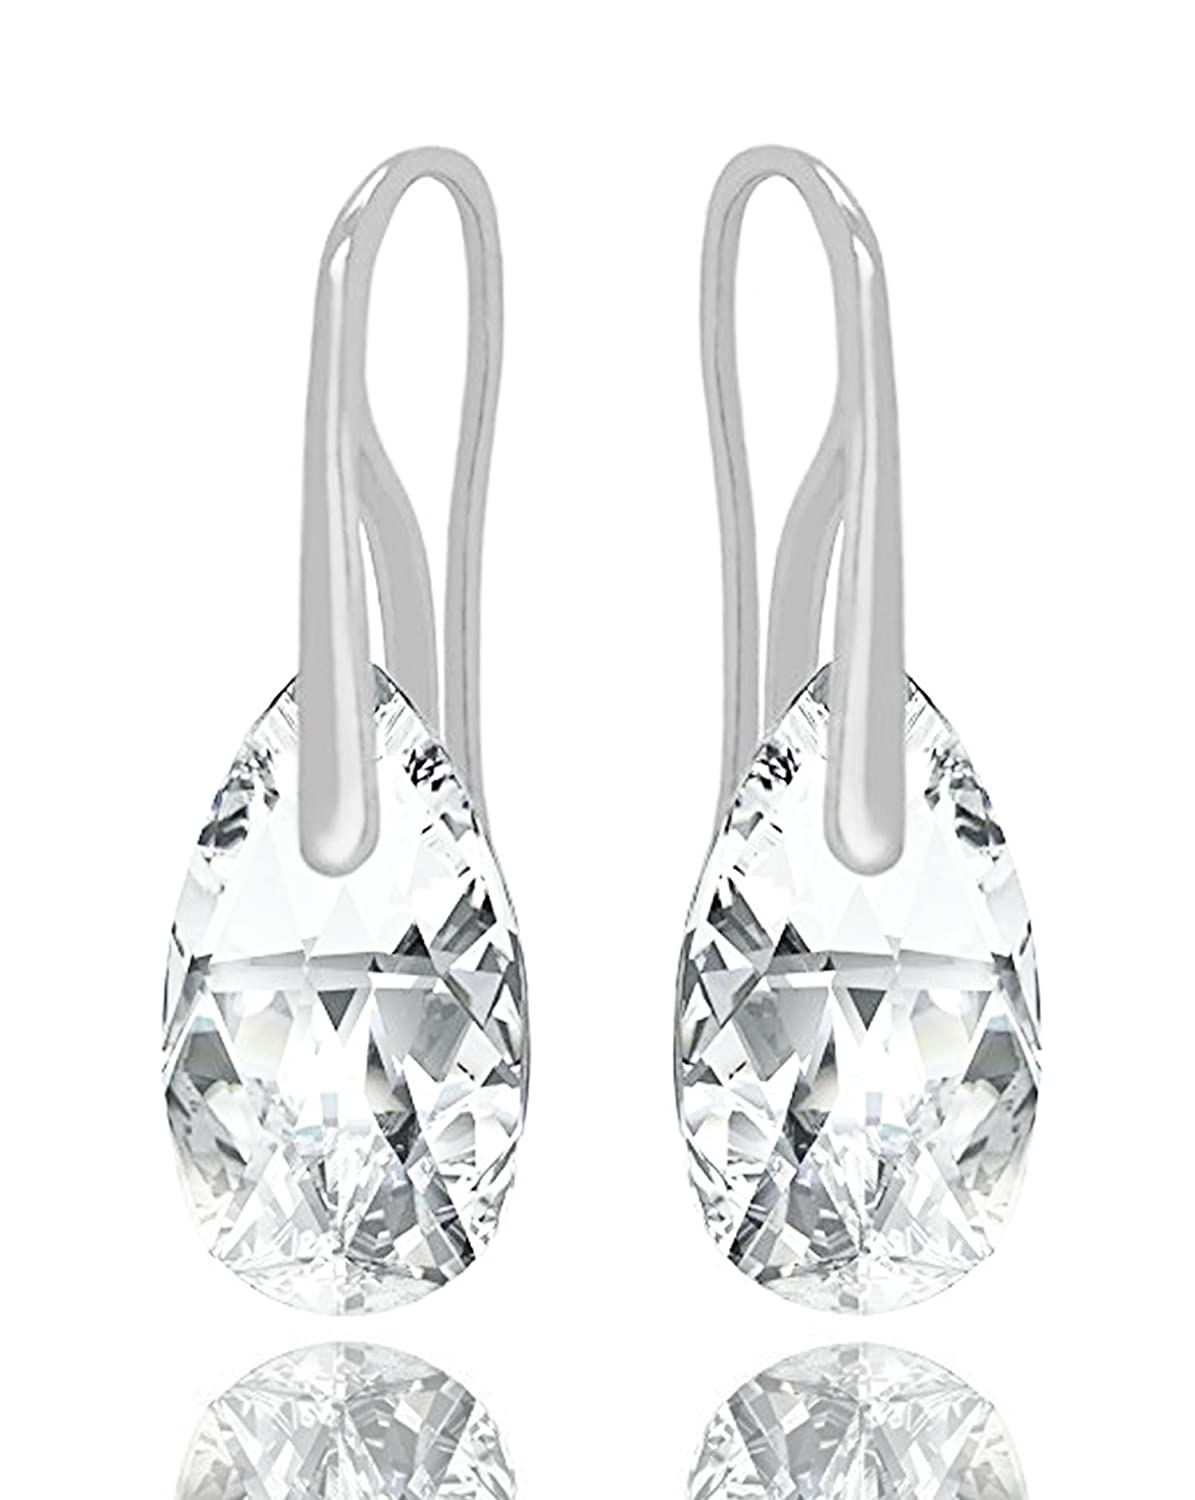 710371c0d Amazon.com: Sterling Silver 925 Made with Swarovski Crystals Clear Teardrop  Pierced Earrings: Jewelry